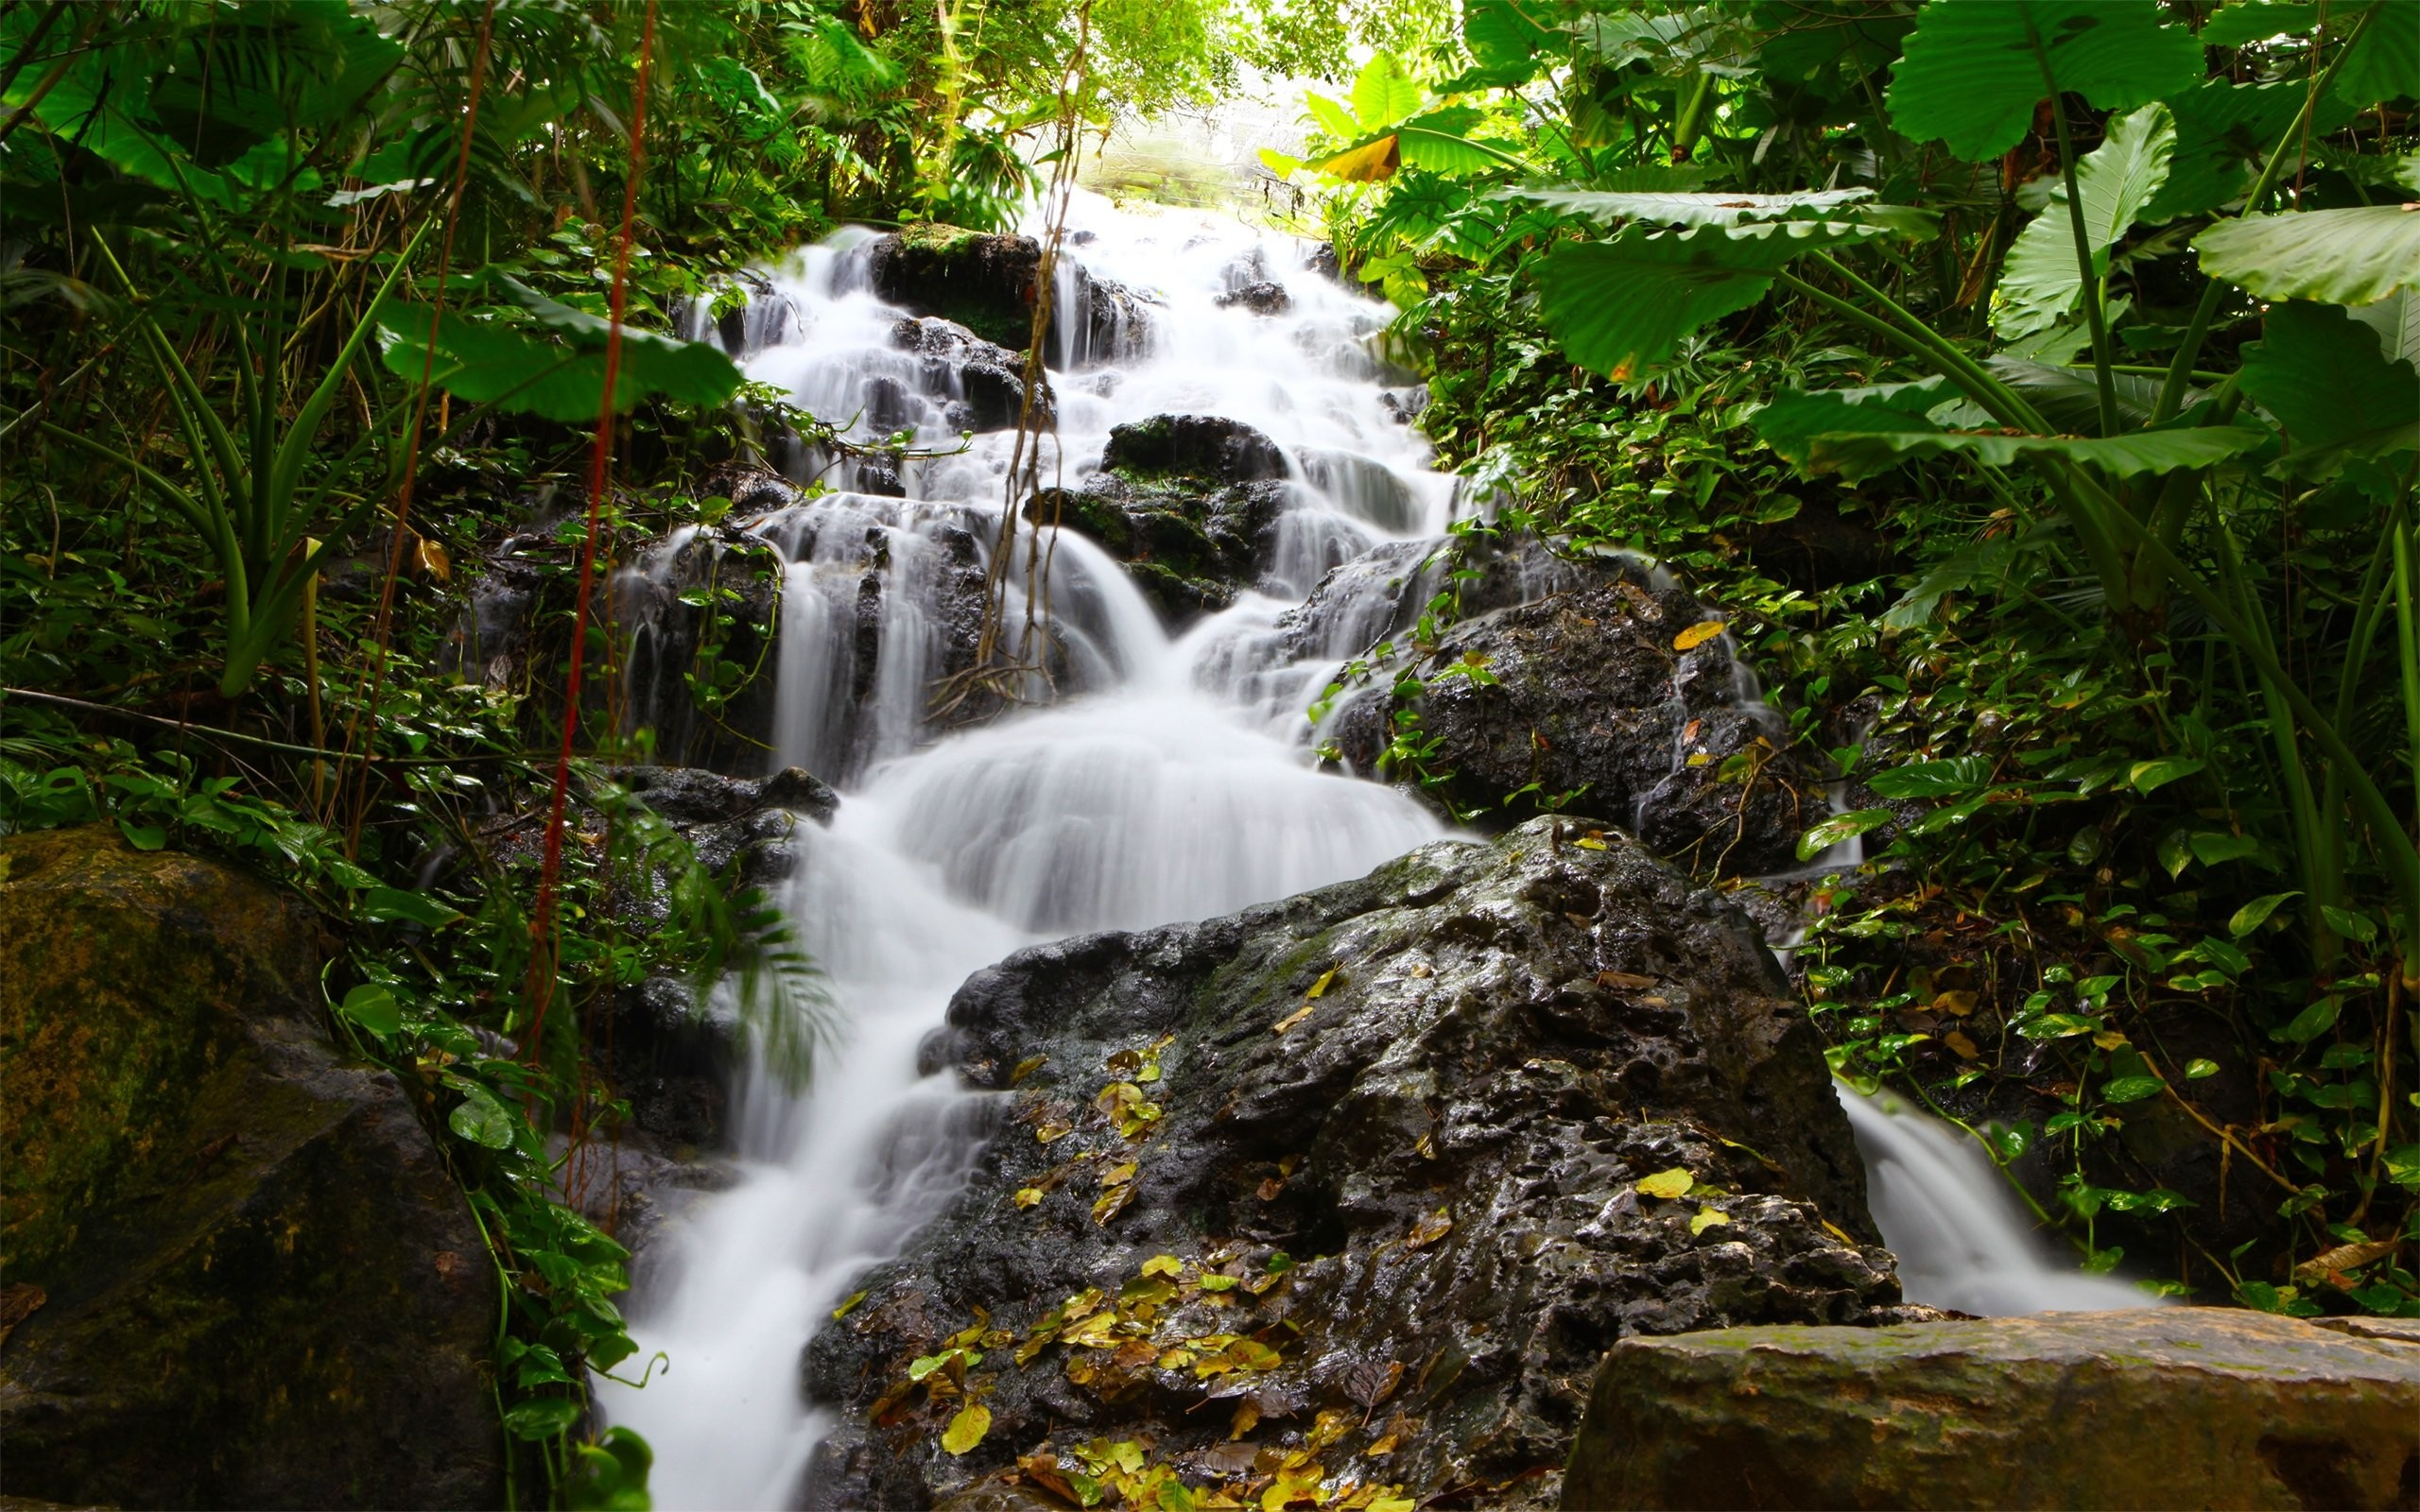 Free Images Of Waterfalls. SHARE. TAGS: Screensaver Mexico Animated …